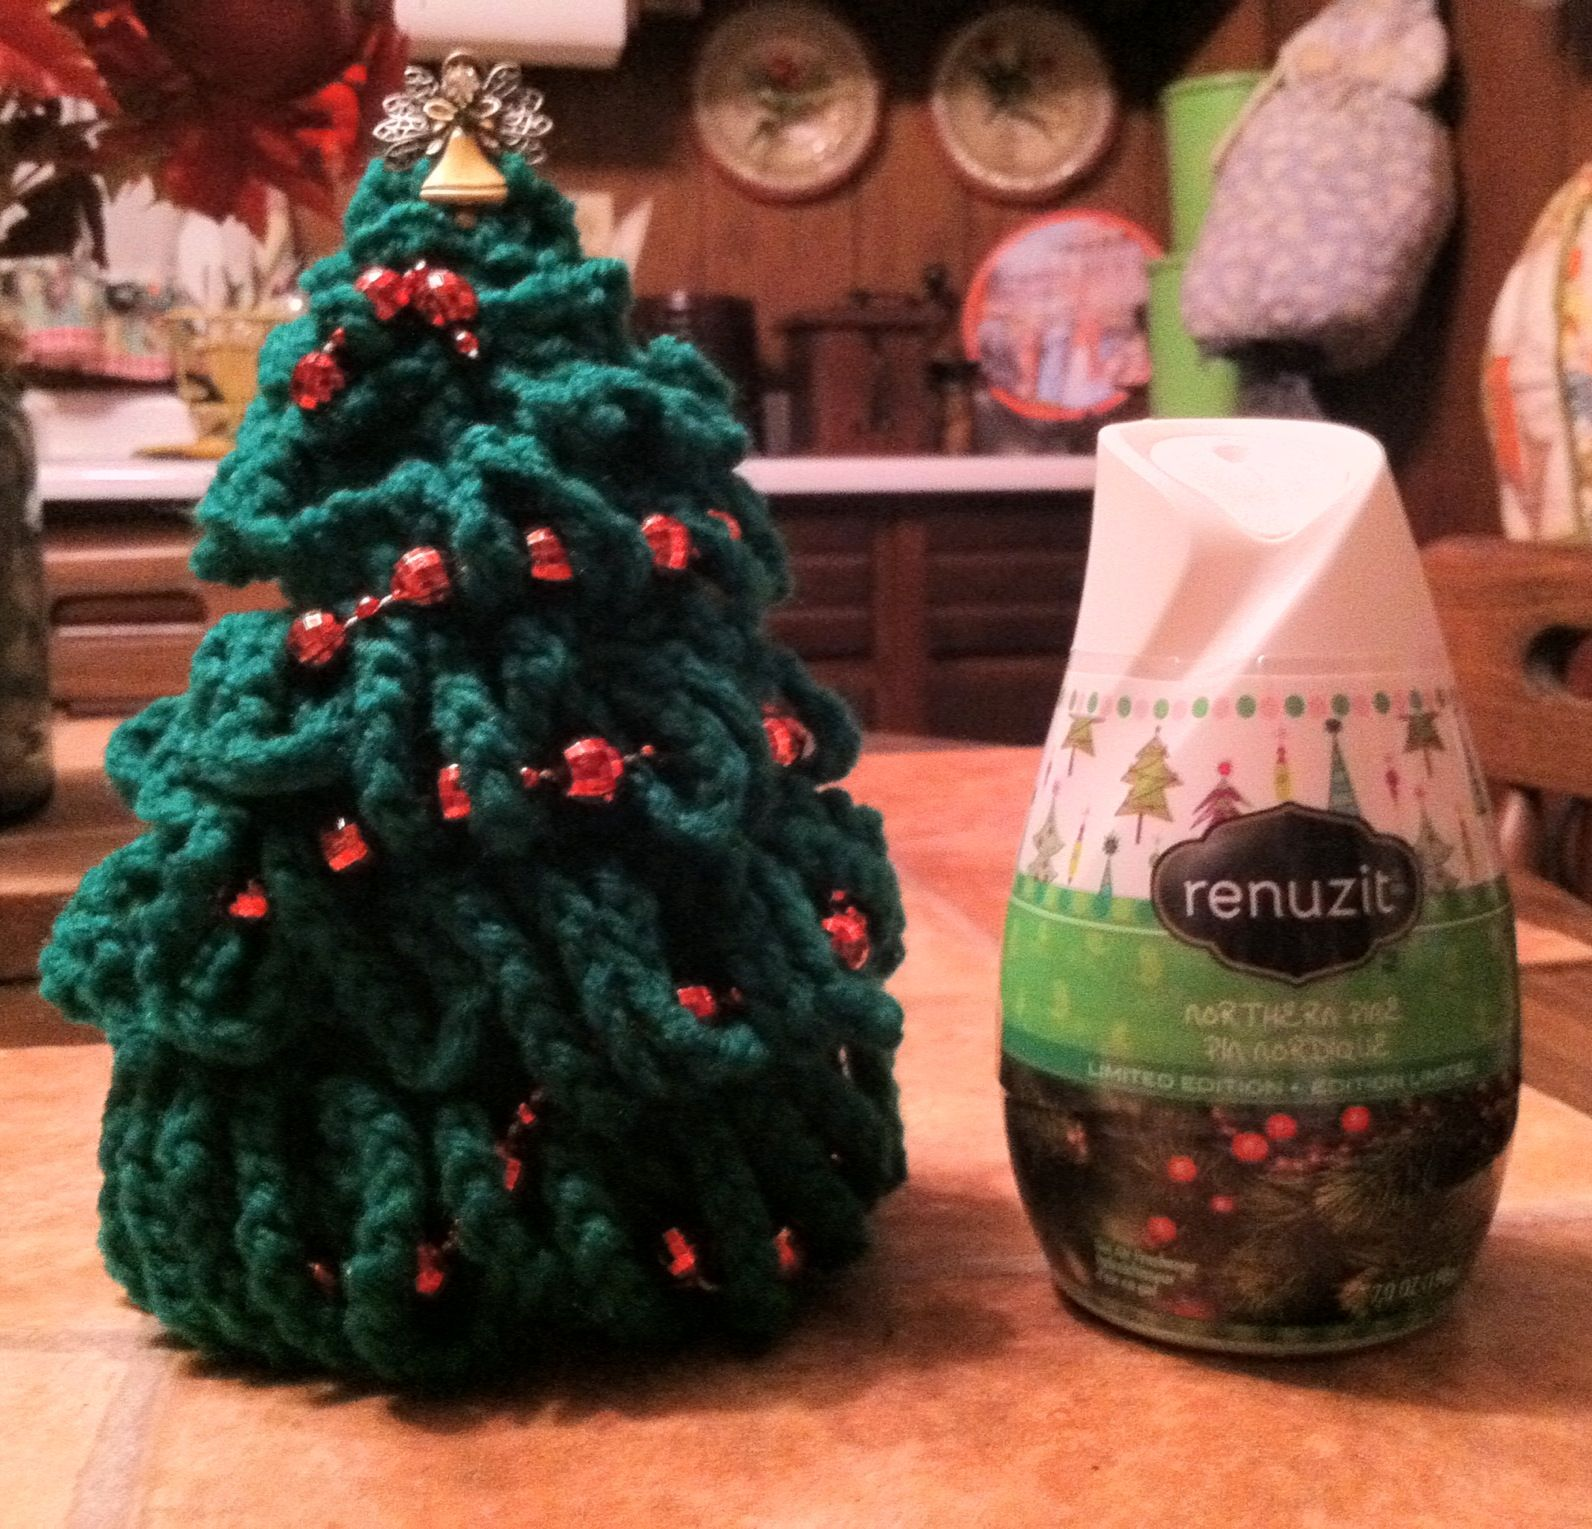 Spot Goes To The Farm Board Book By Eric Hill 0399236473 9780399236471 In 2020 Crochet Christmas Trees Renuzit Air Freshener Renuzit